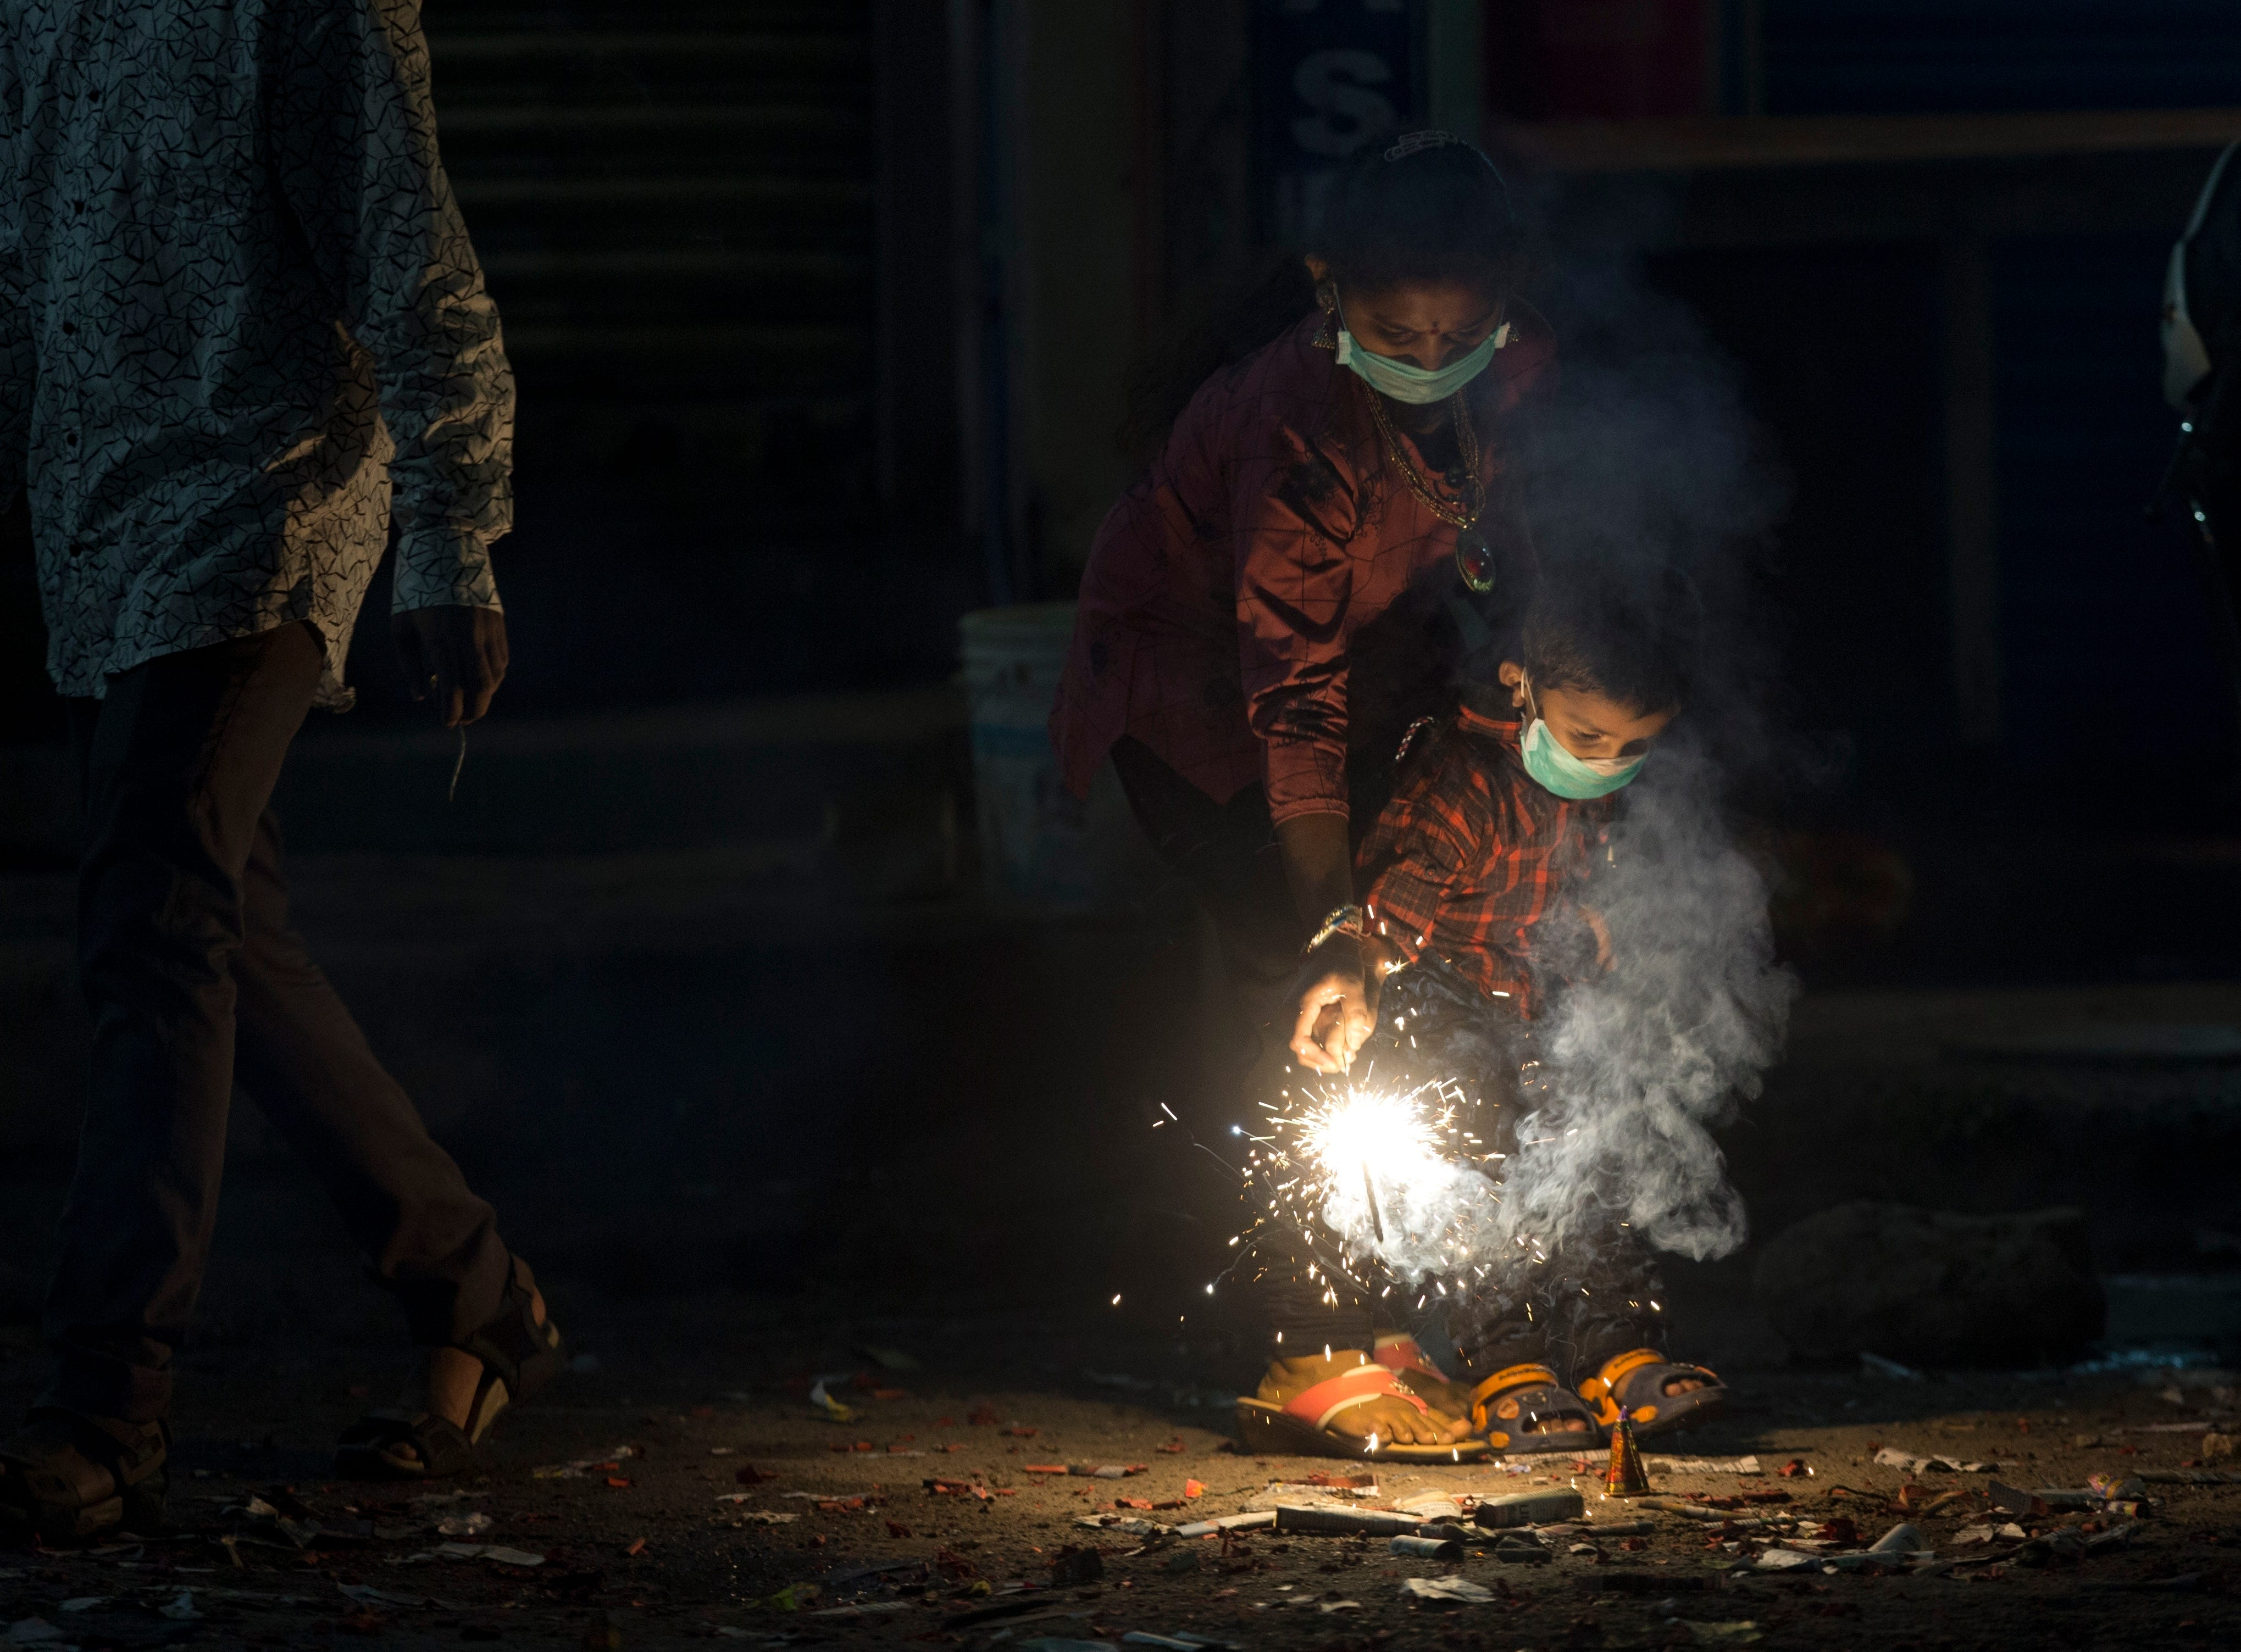 Indians light fire crackers wearing masks to fight pollution as they celebrate Diwali, the festival of lights in Hyderabad, Wednesday, Nov. 7, 2018. India's top court recently ruled that only less polluting firecrackers should be manufactured and sold.